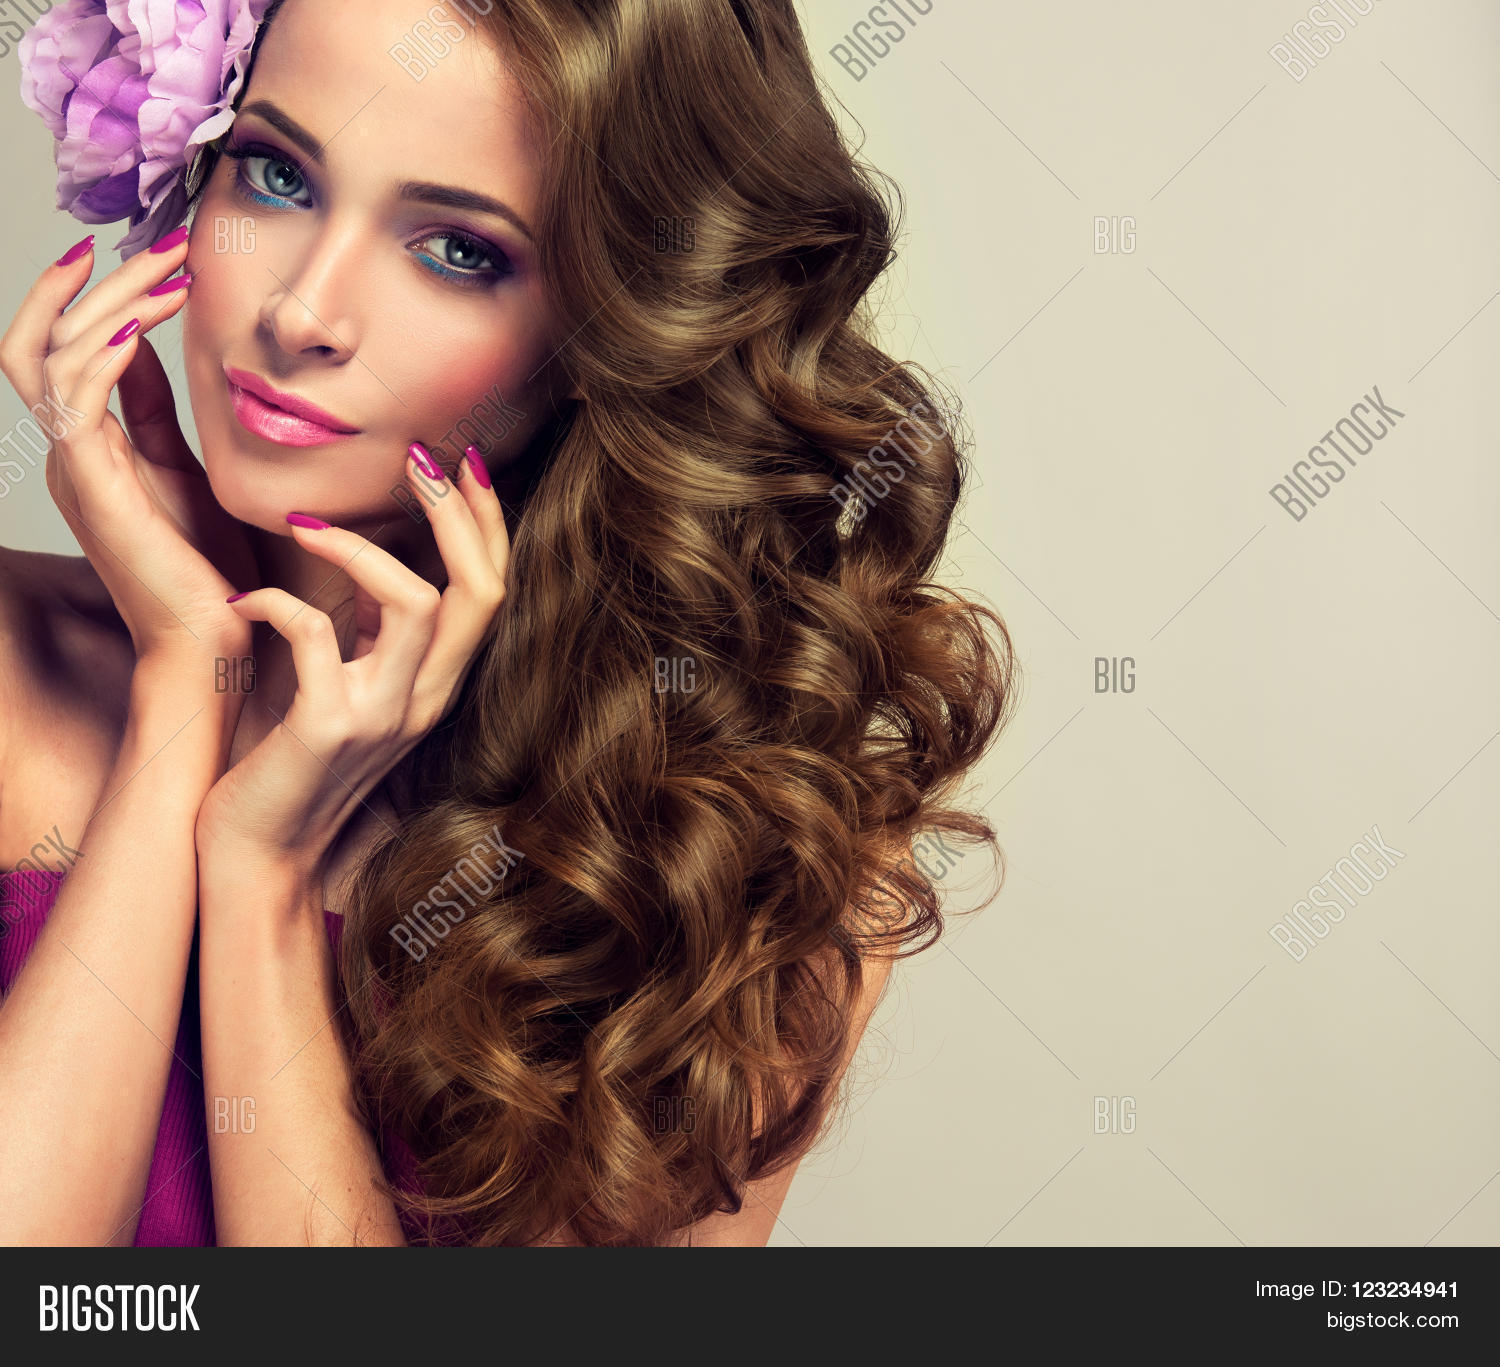 Background images for beauty salon free vector download